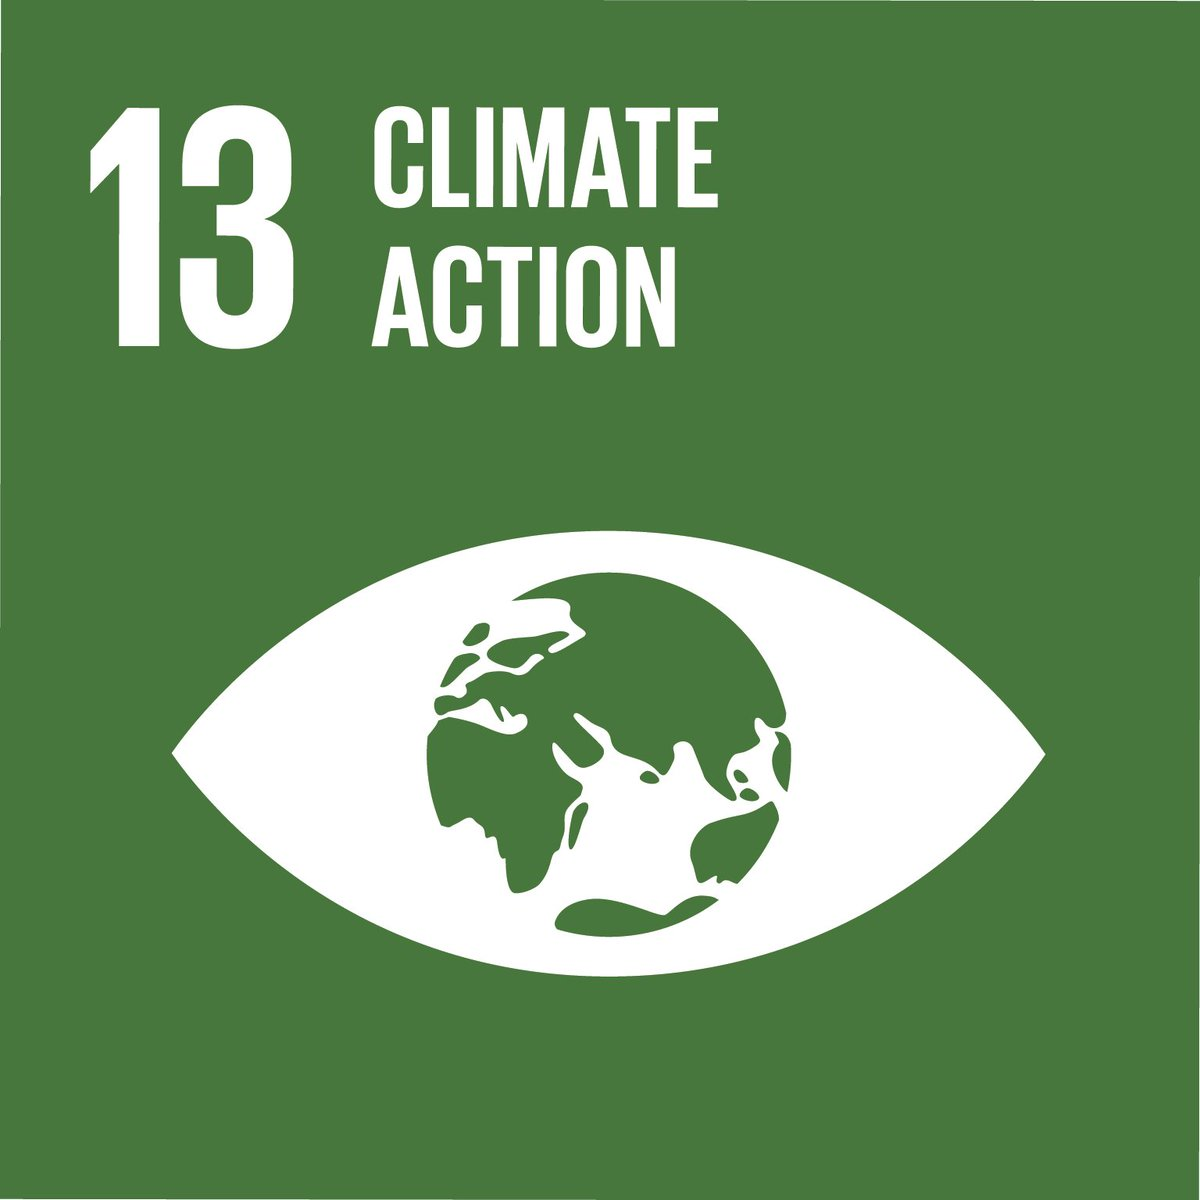 Climate change is still moving faster than we are. Thank you to the 23 countries who signed a declaration for more ambition on climate action. I am convening a climate summit next year and look forward to working with all to protect our planet. bit.ly/2r28wDa